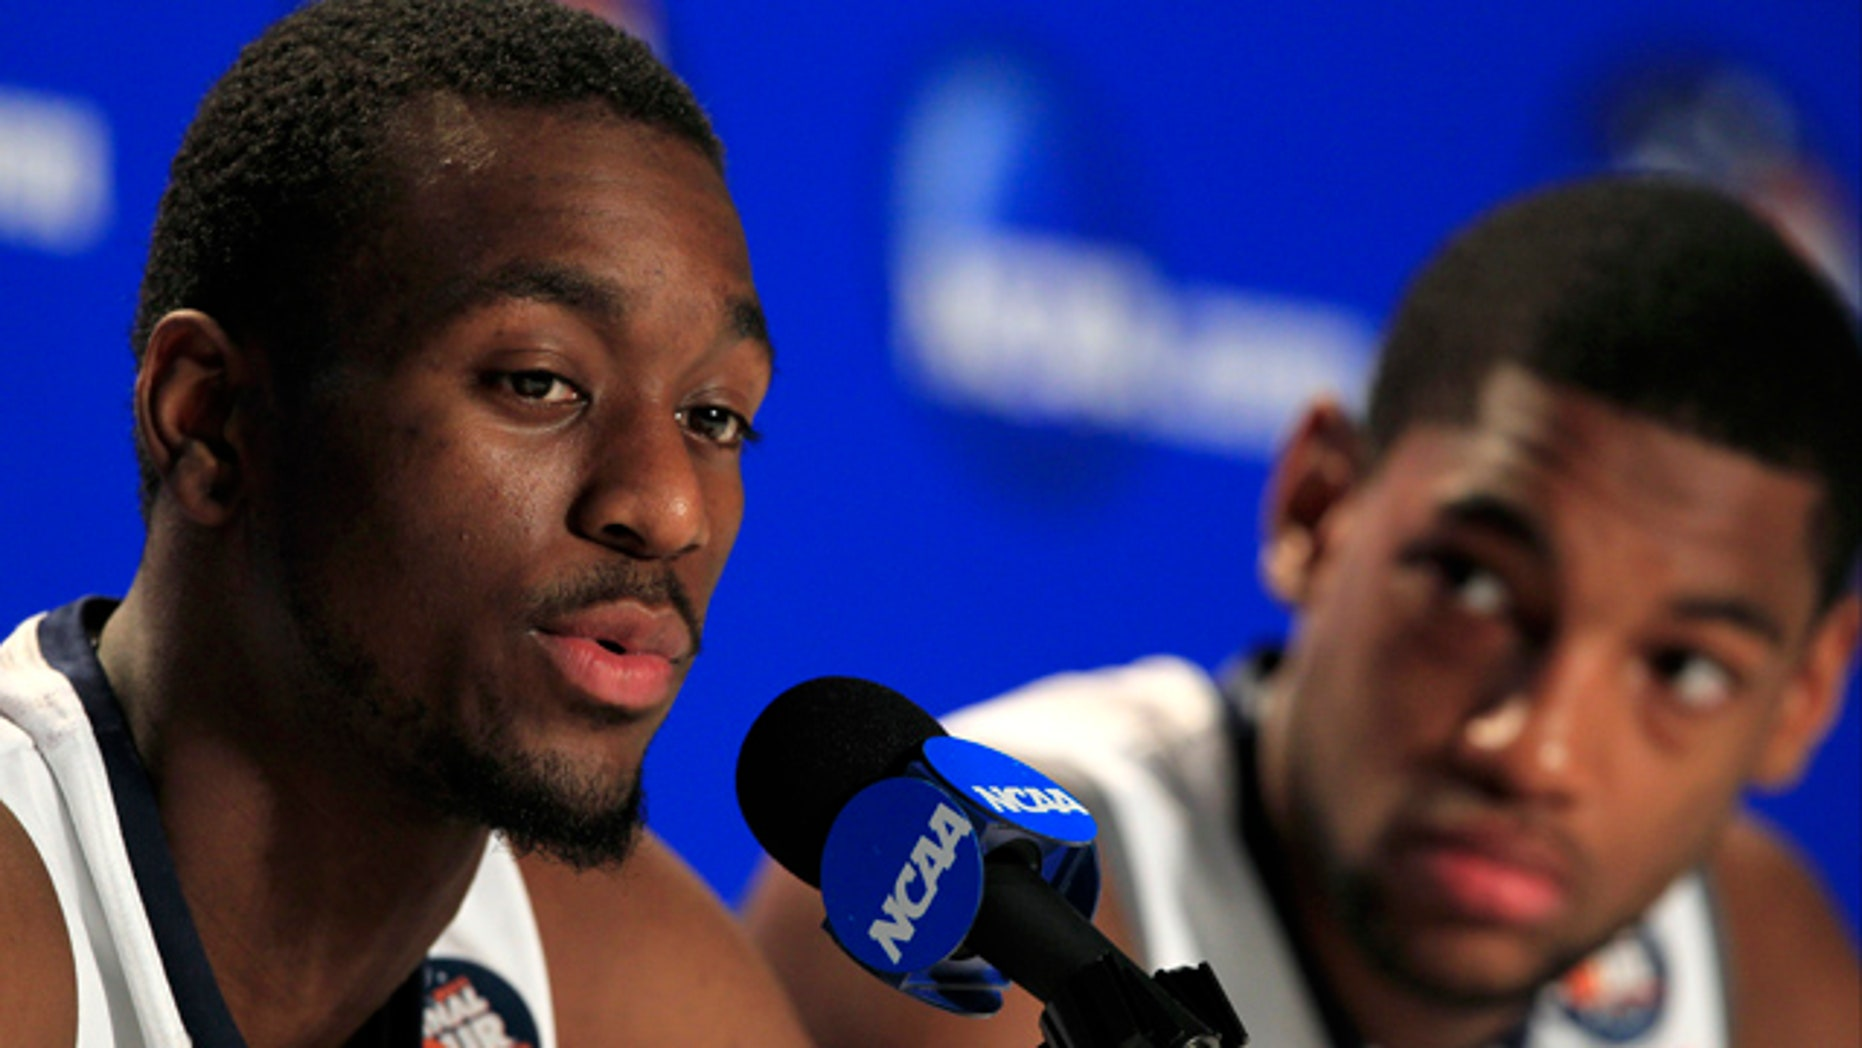 April 3, 2011: Connecticut's Kemba Walker, left, speaks during a news conference as teammate Roscoe Smith looks on before a practice session for the men's NCAA Final Four college basketball championship game in Houston.